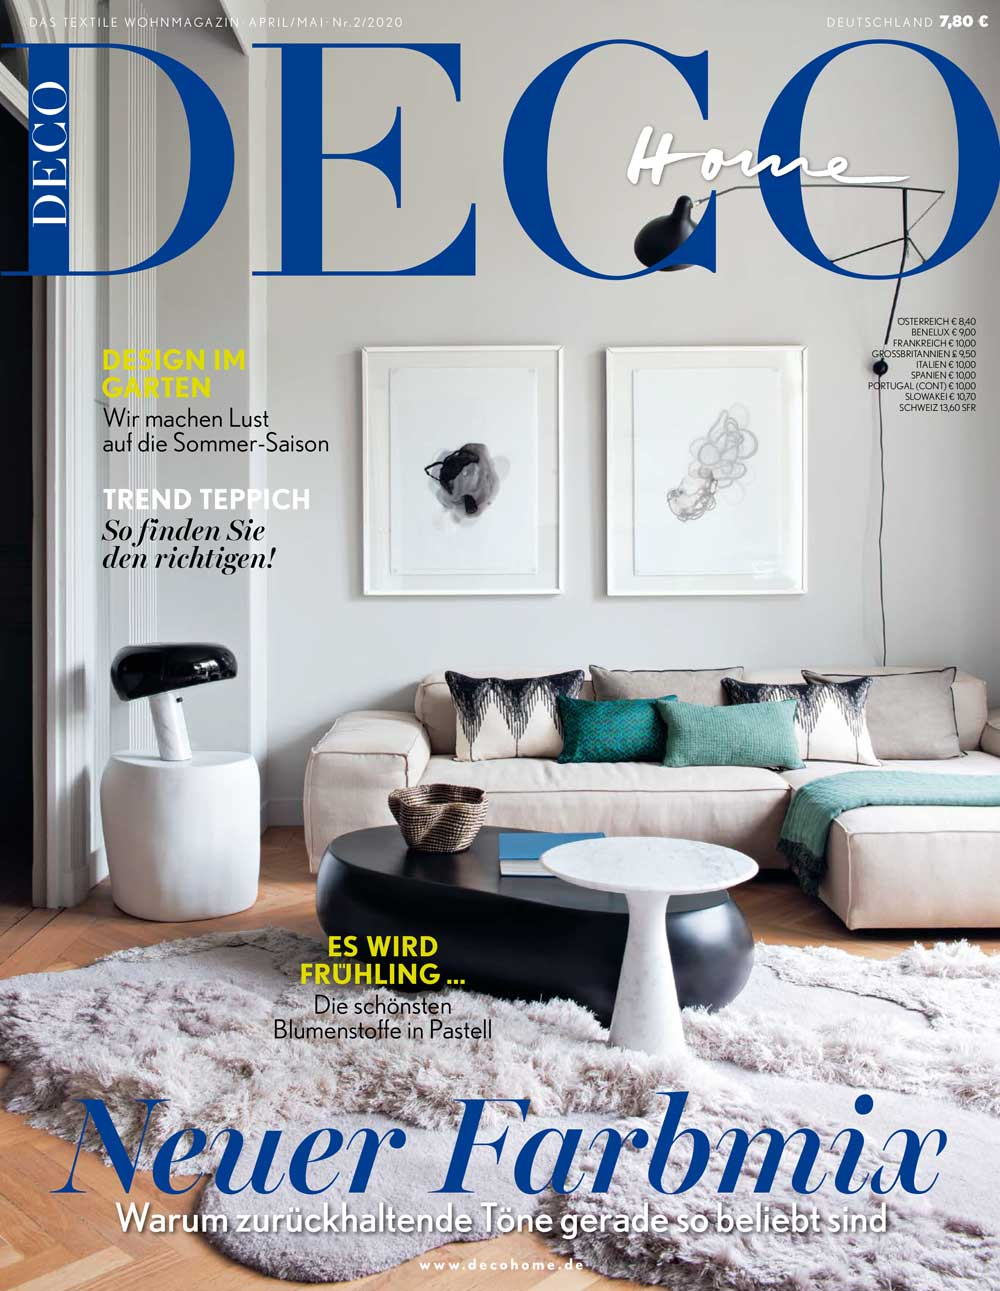 deco-2-20-titel-decohome.de_